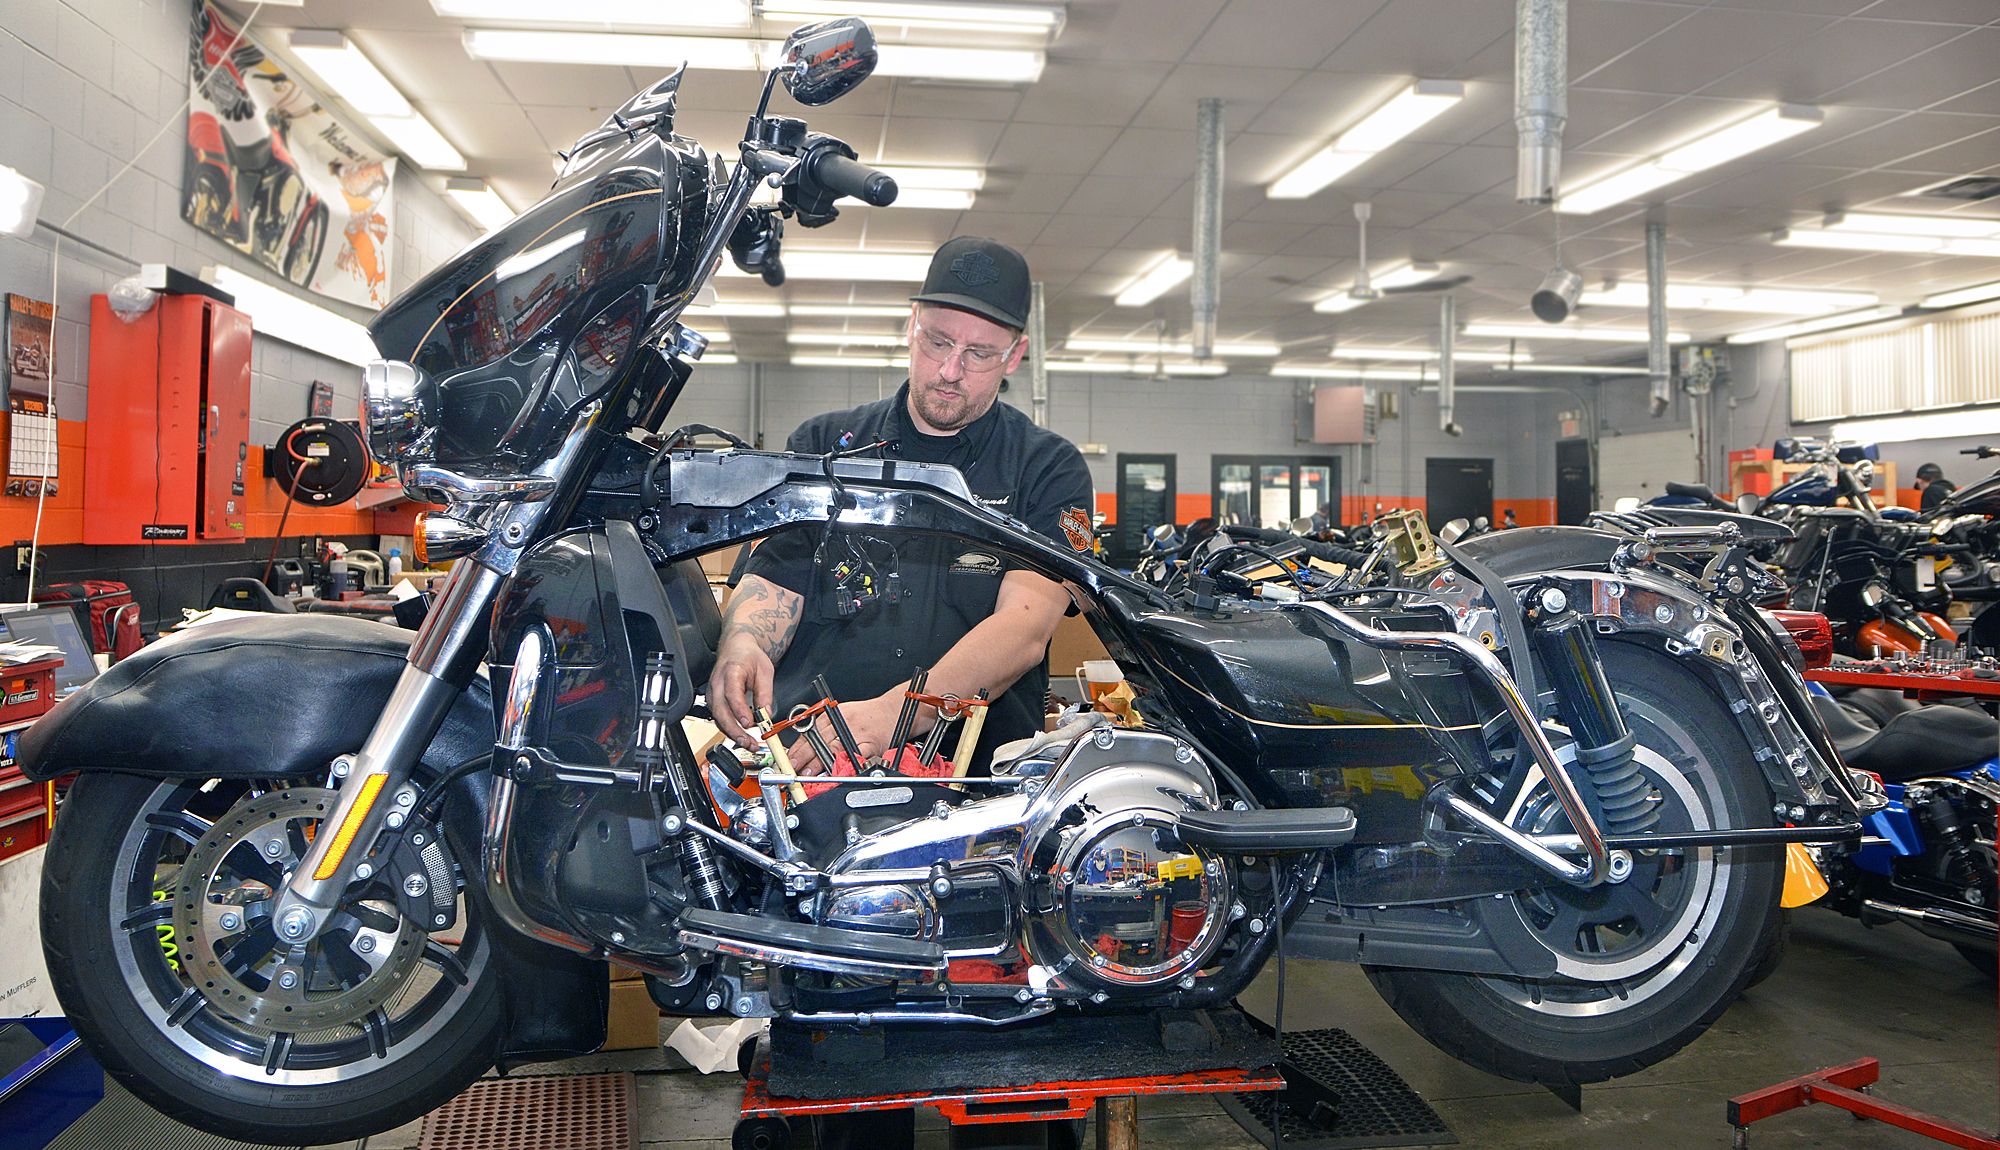 2010 MTTI Motorcycle / Power Equipment Technician, 'Hammah' Christopher Vallee, Sr., is a Harley-Davidson Master Technician.